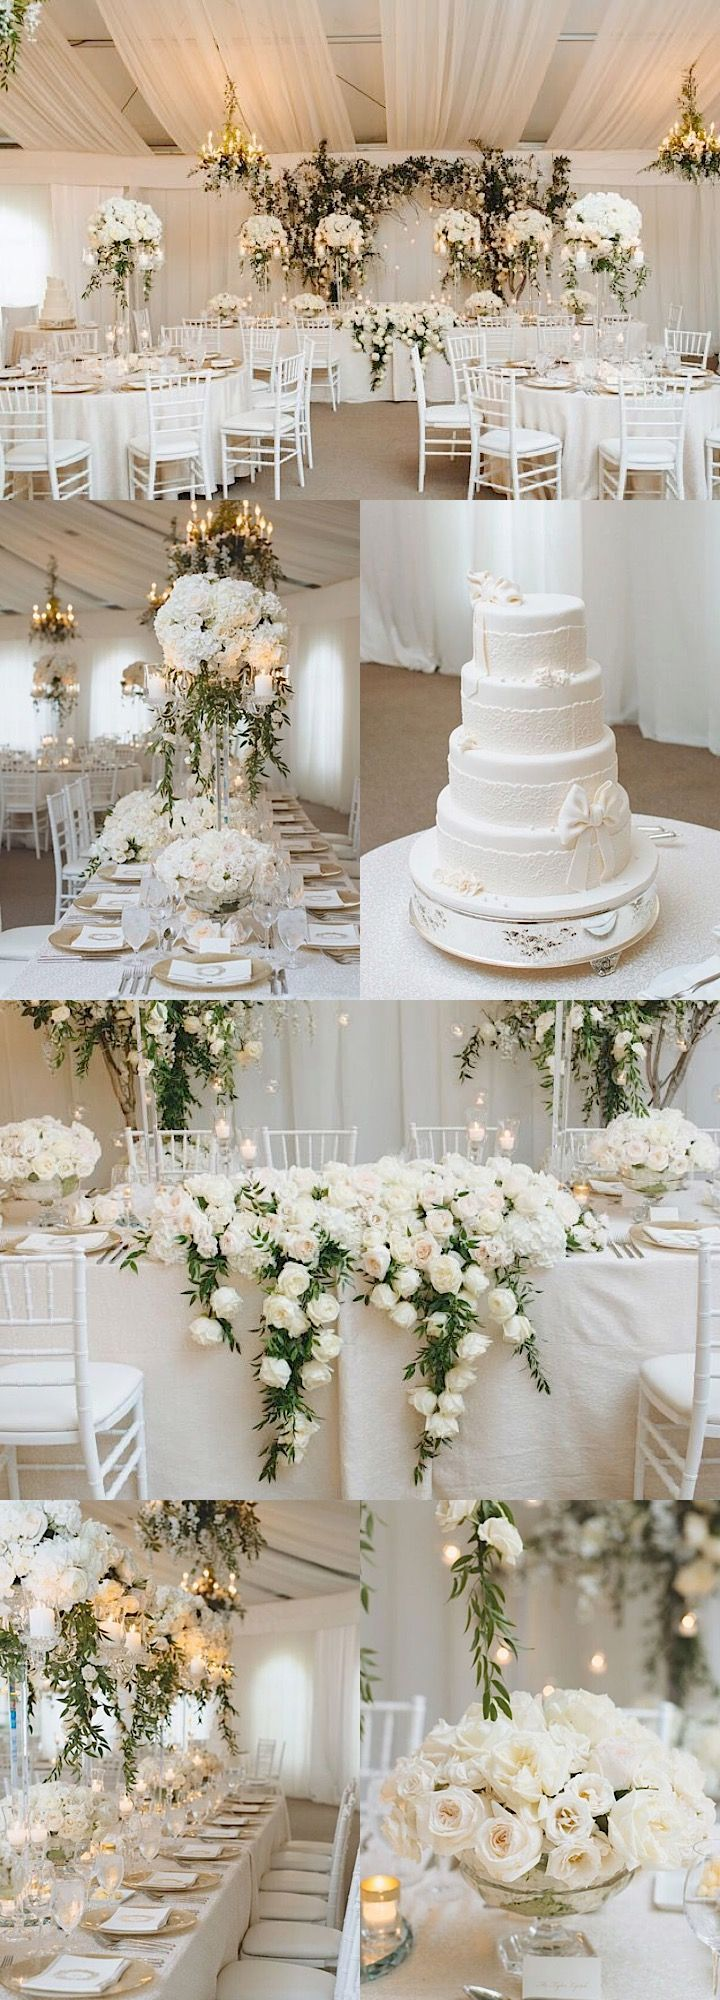 Best 25 elegant wedding ideas on pinterest elegant for All white wedding theme pictures